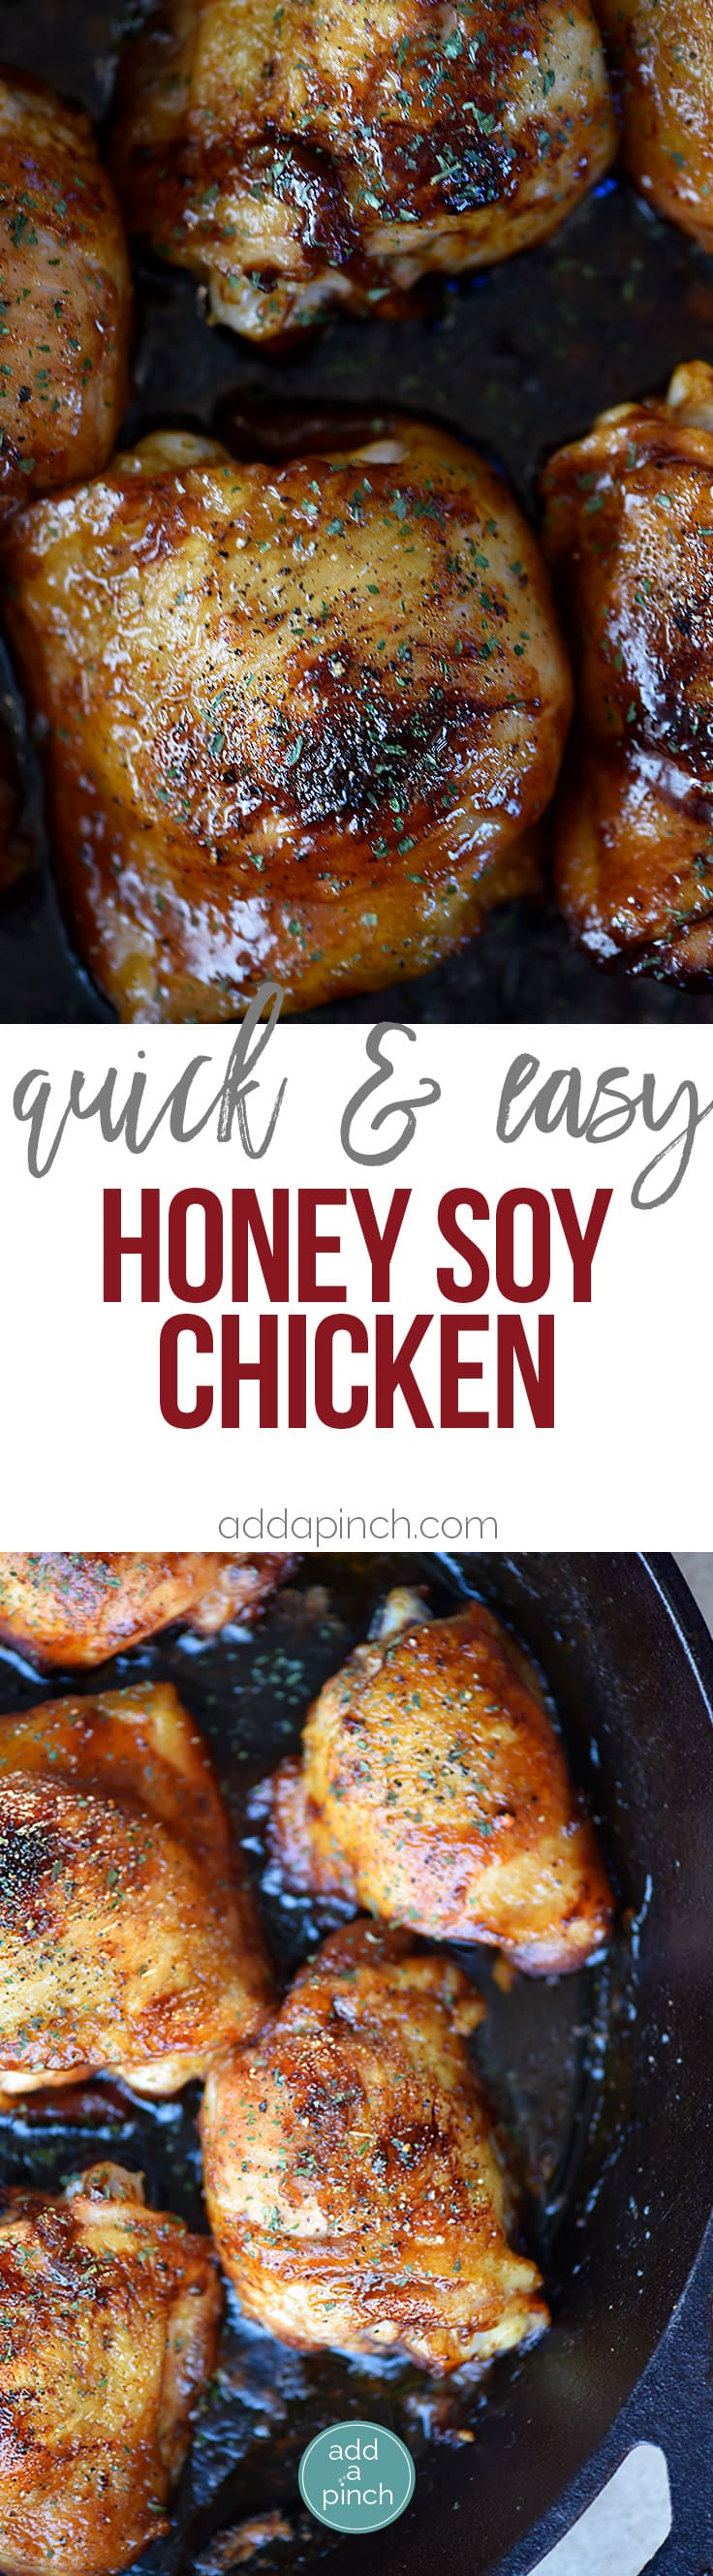 Honey Soy Chicken Recipe - This honey soy chicken recipe comes together for a quick, easy and delicious meal! Use with all cuts of chicken! // addapinch.com